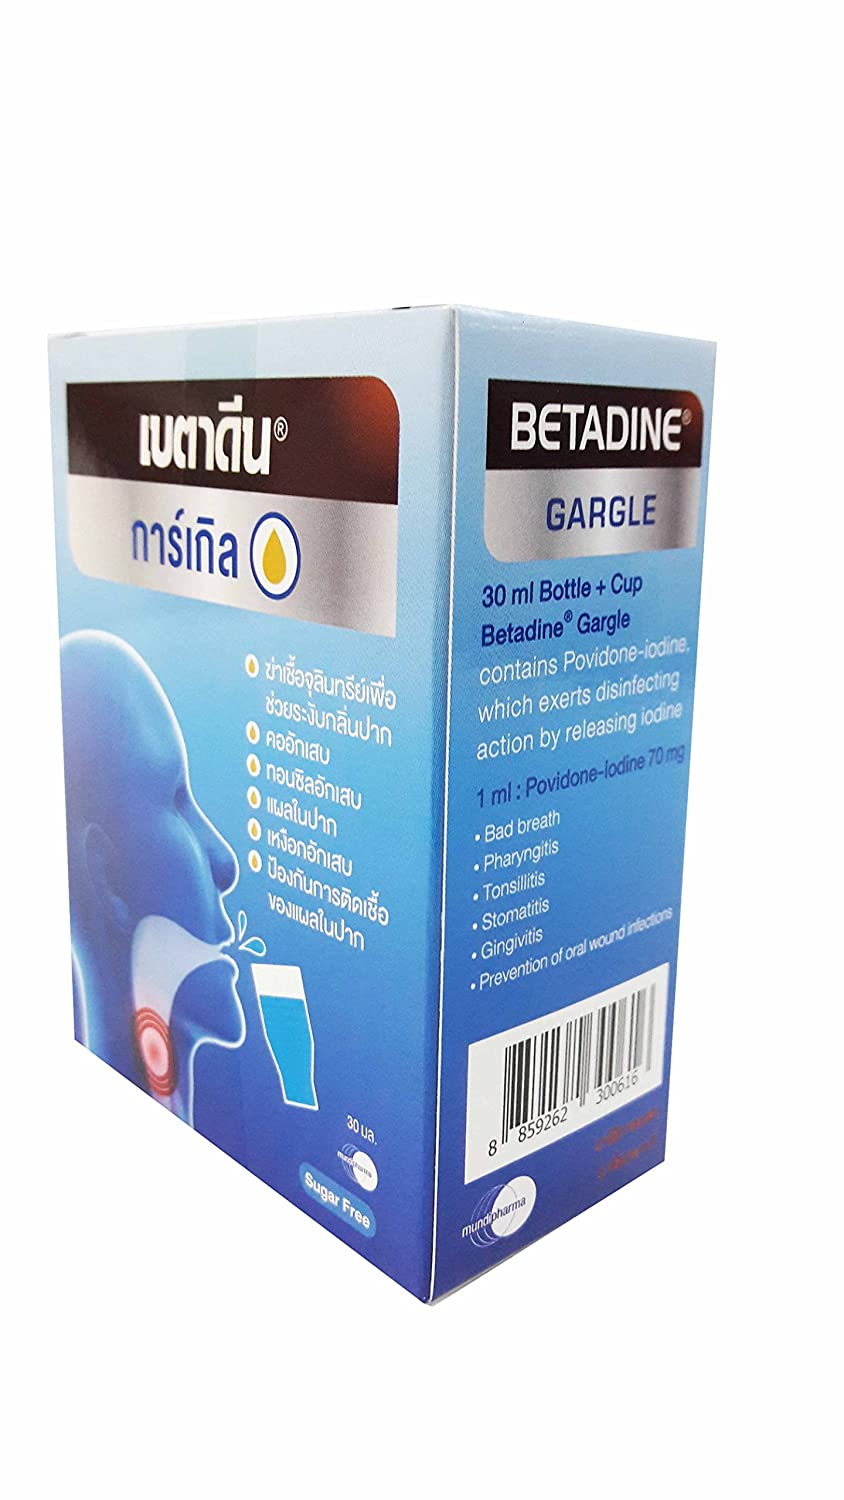 3 Packs Of Betadine Gargle Prevention Oral Wound Antiseptic Solution 30 Ml Free Gift Infections Bad Breath Pharyngitis Tonsillitis Gingivitis Sugar